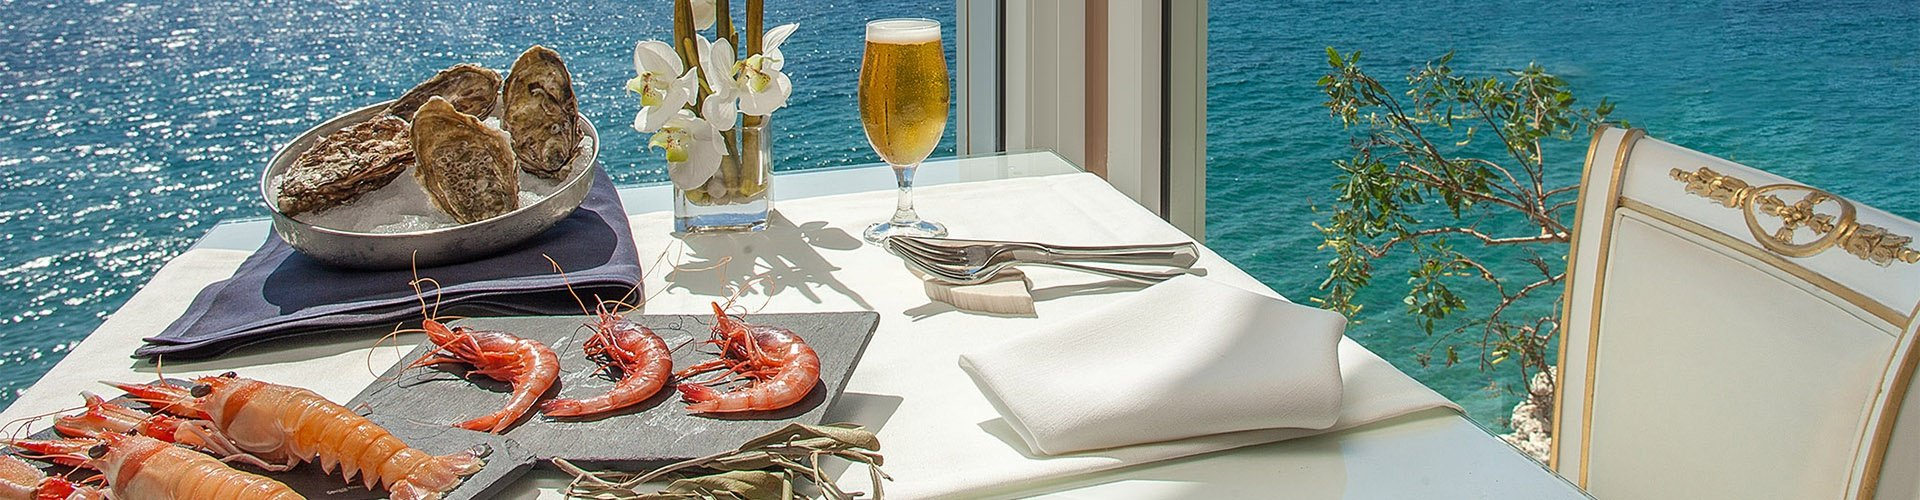 Villa Venecia Boutique - Benidorm - Restaurants